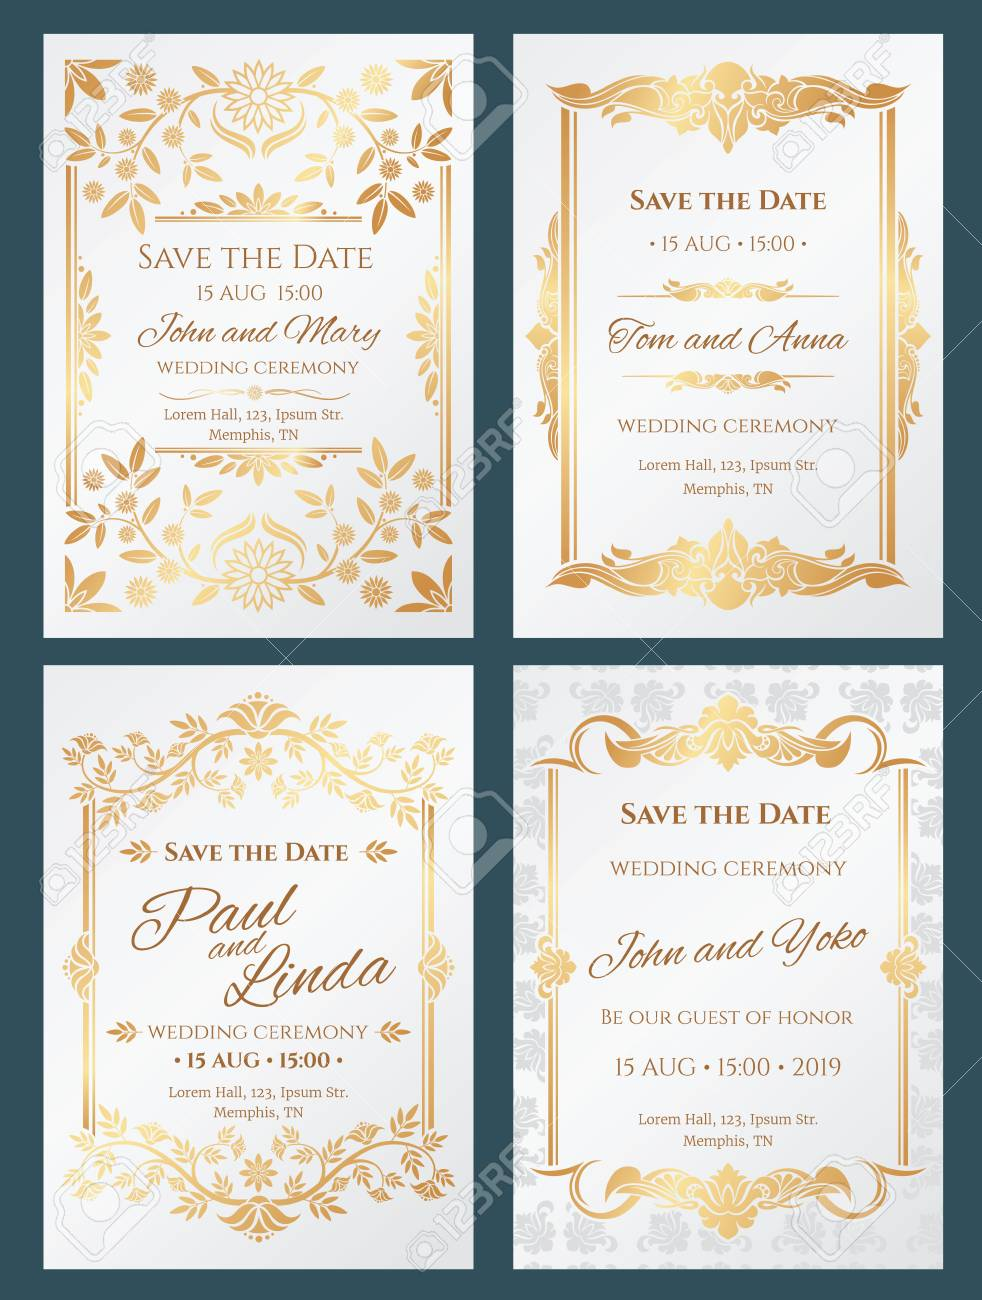 Save the date luxury vector wedding invitation cards with gold..